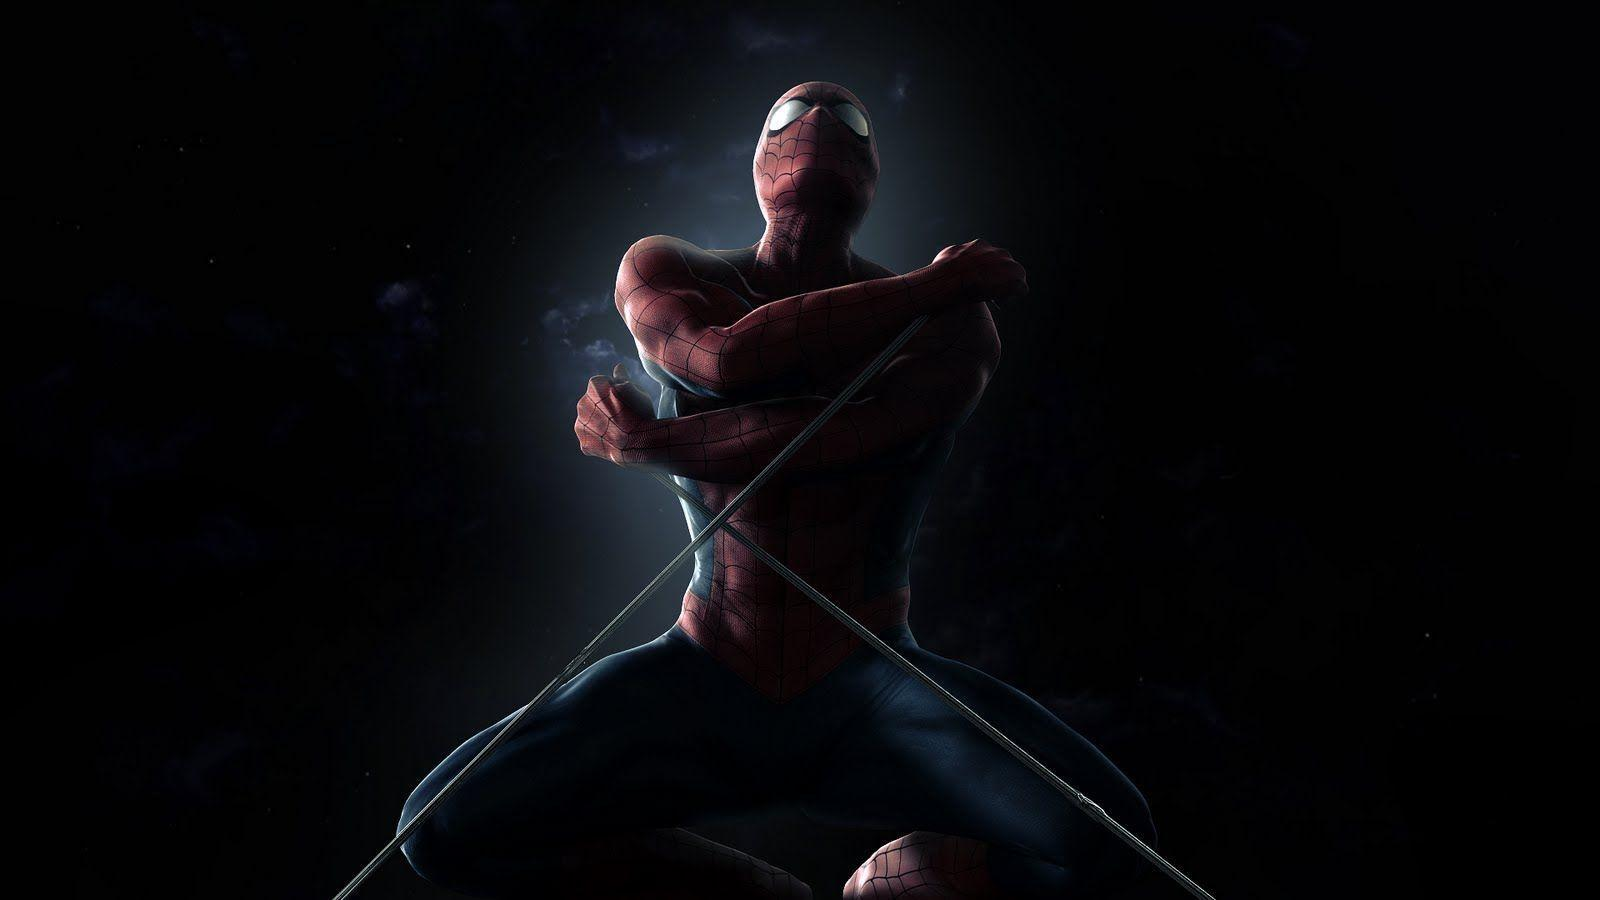 Spiderman 4 HD Wallpapers